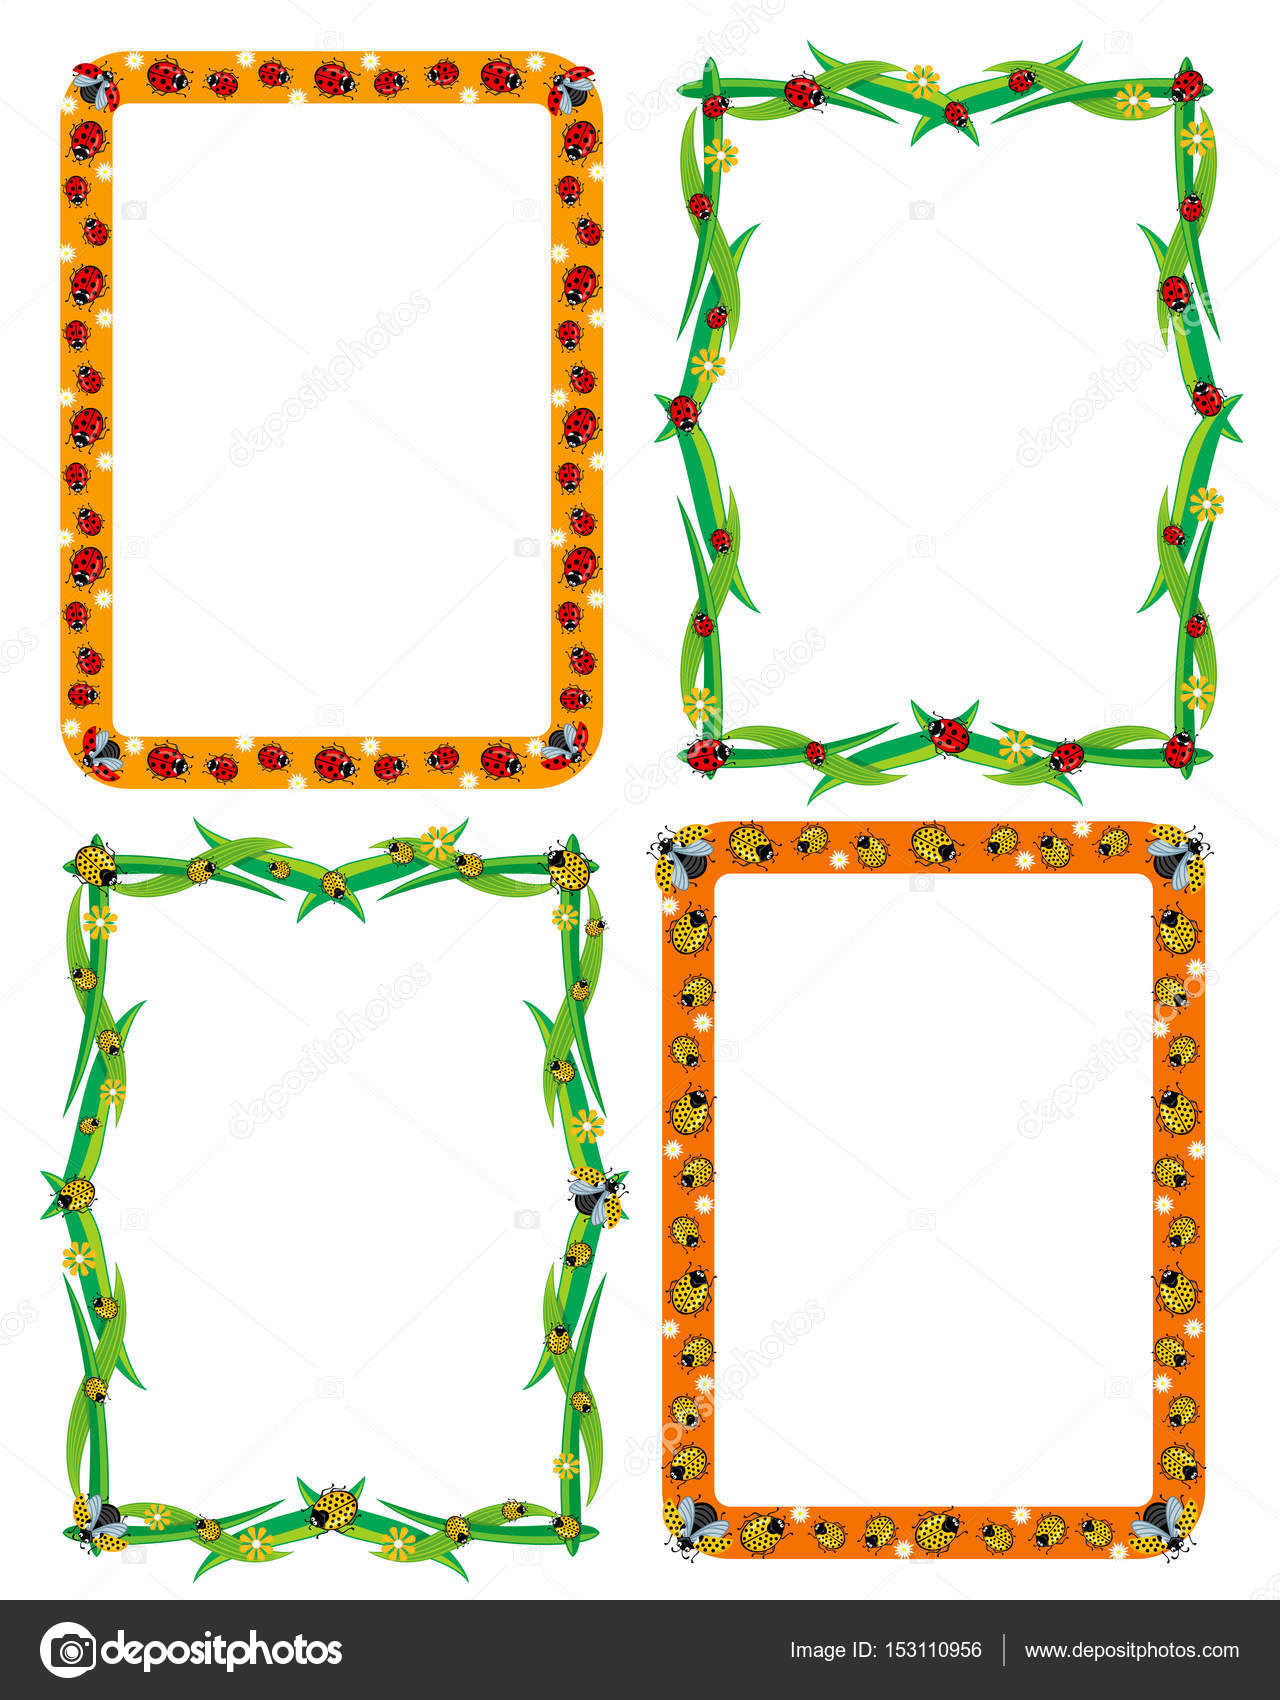 template frame border for decoration or invitation cards with